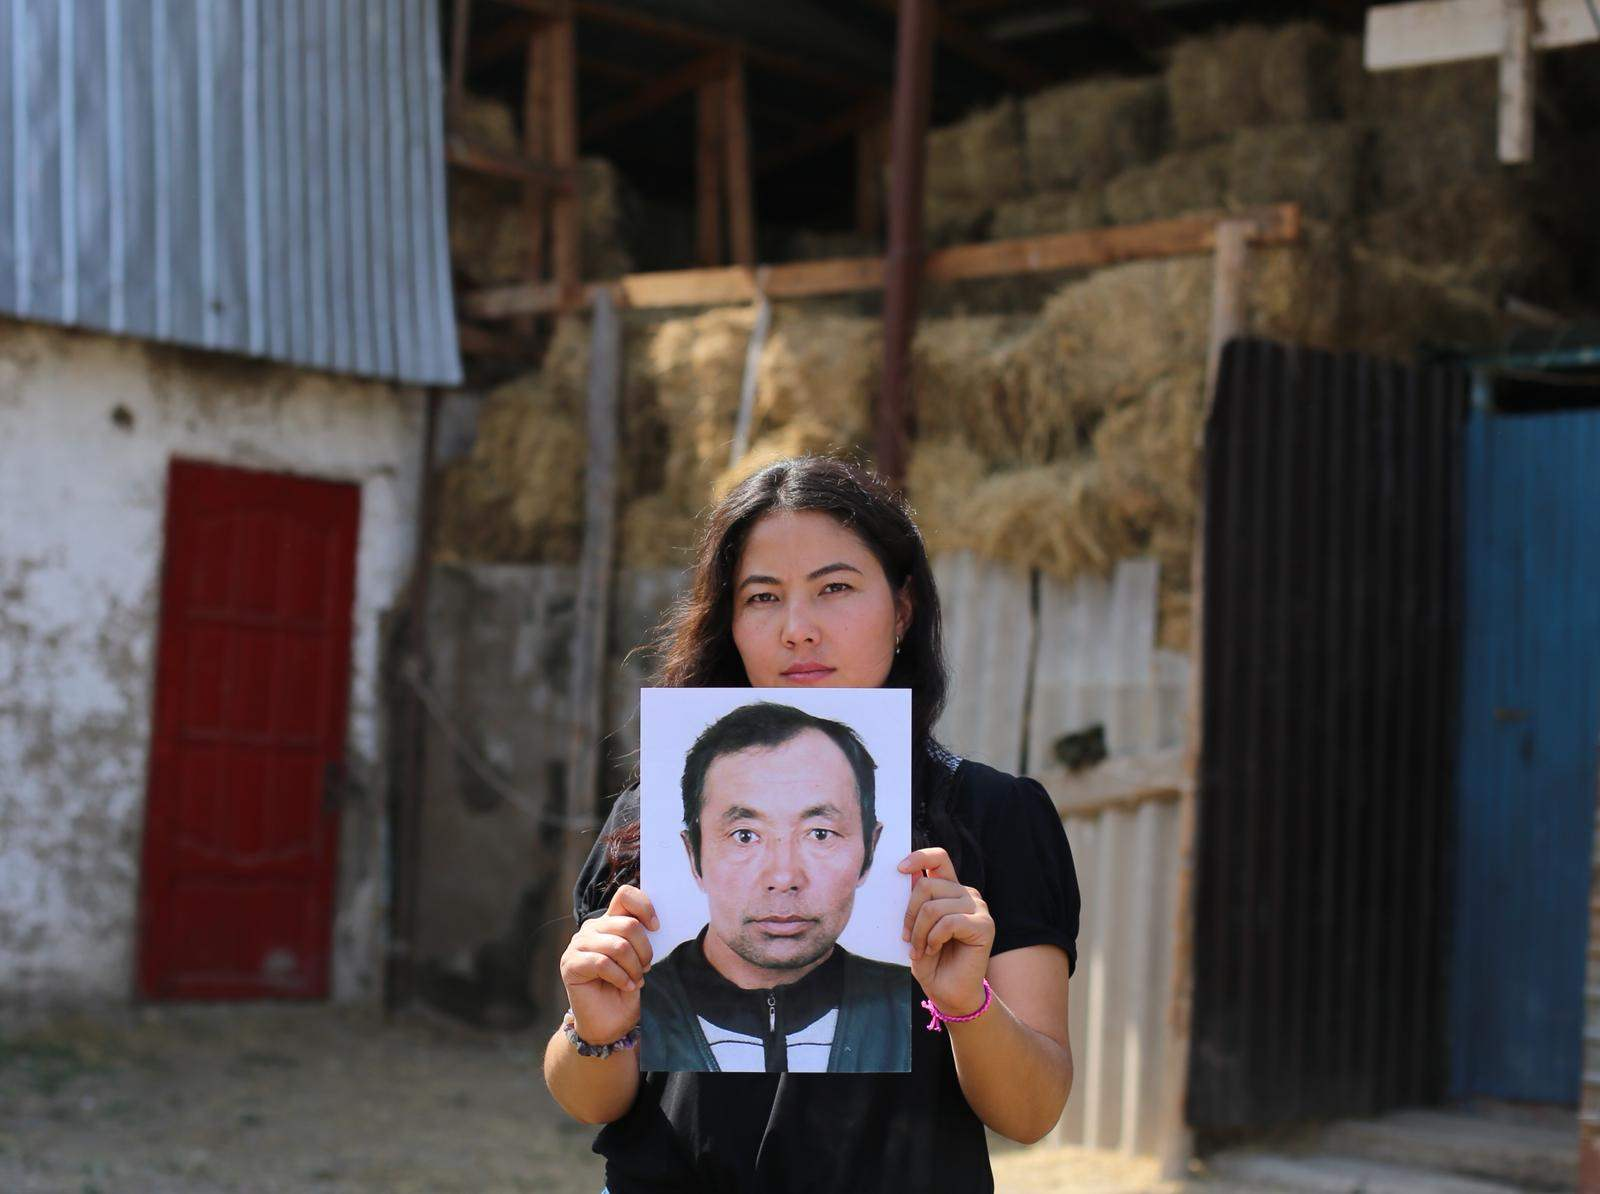 Relatives told Bota Kussaiyn that her father has been sent to re-education camp (Photo by Amnesty)